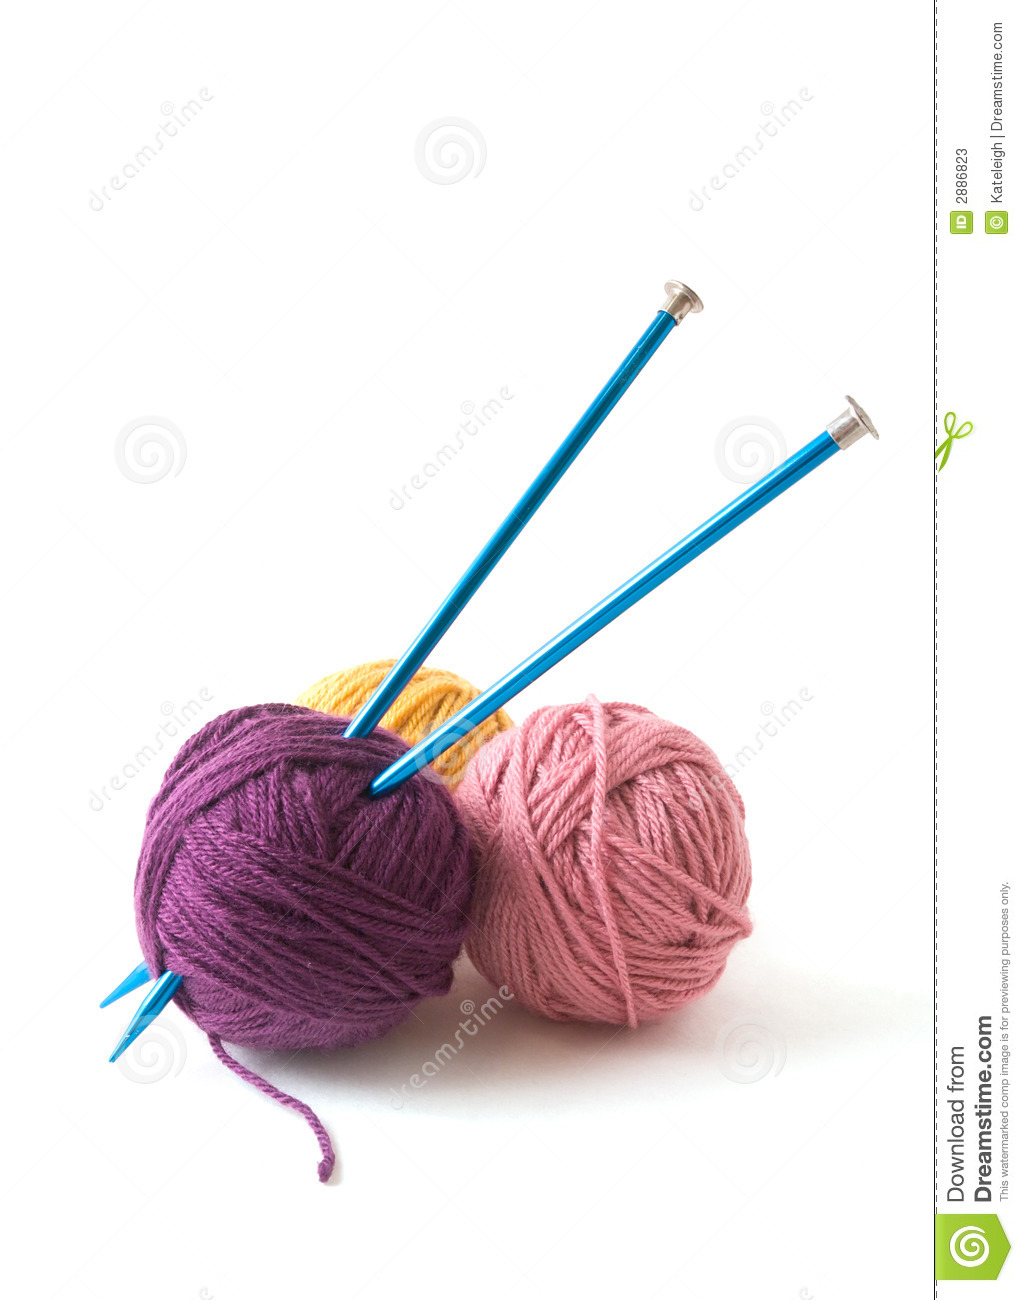 Knitting Needles No : Ball of yarn and knitting needles pixshark